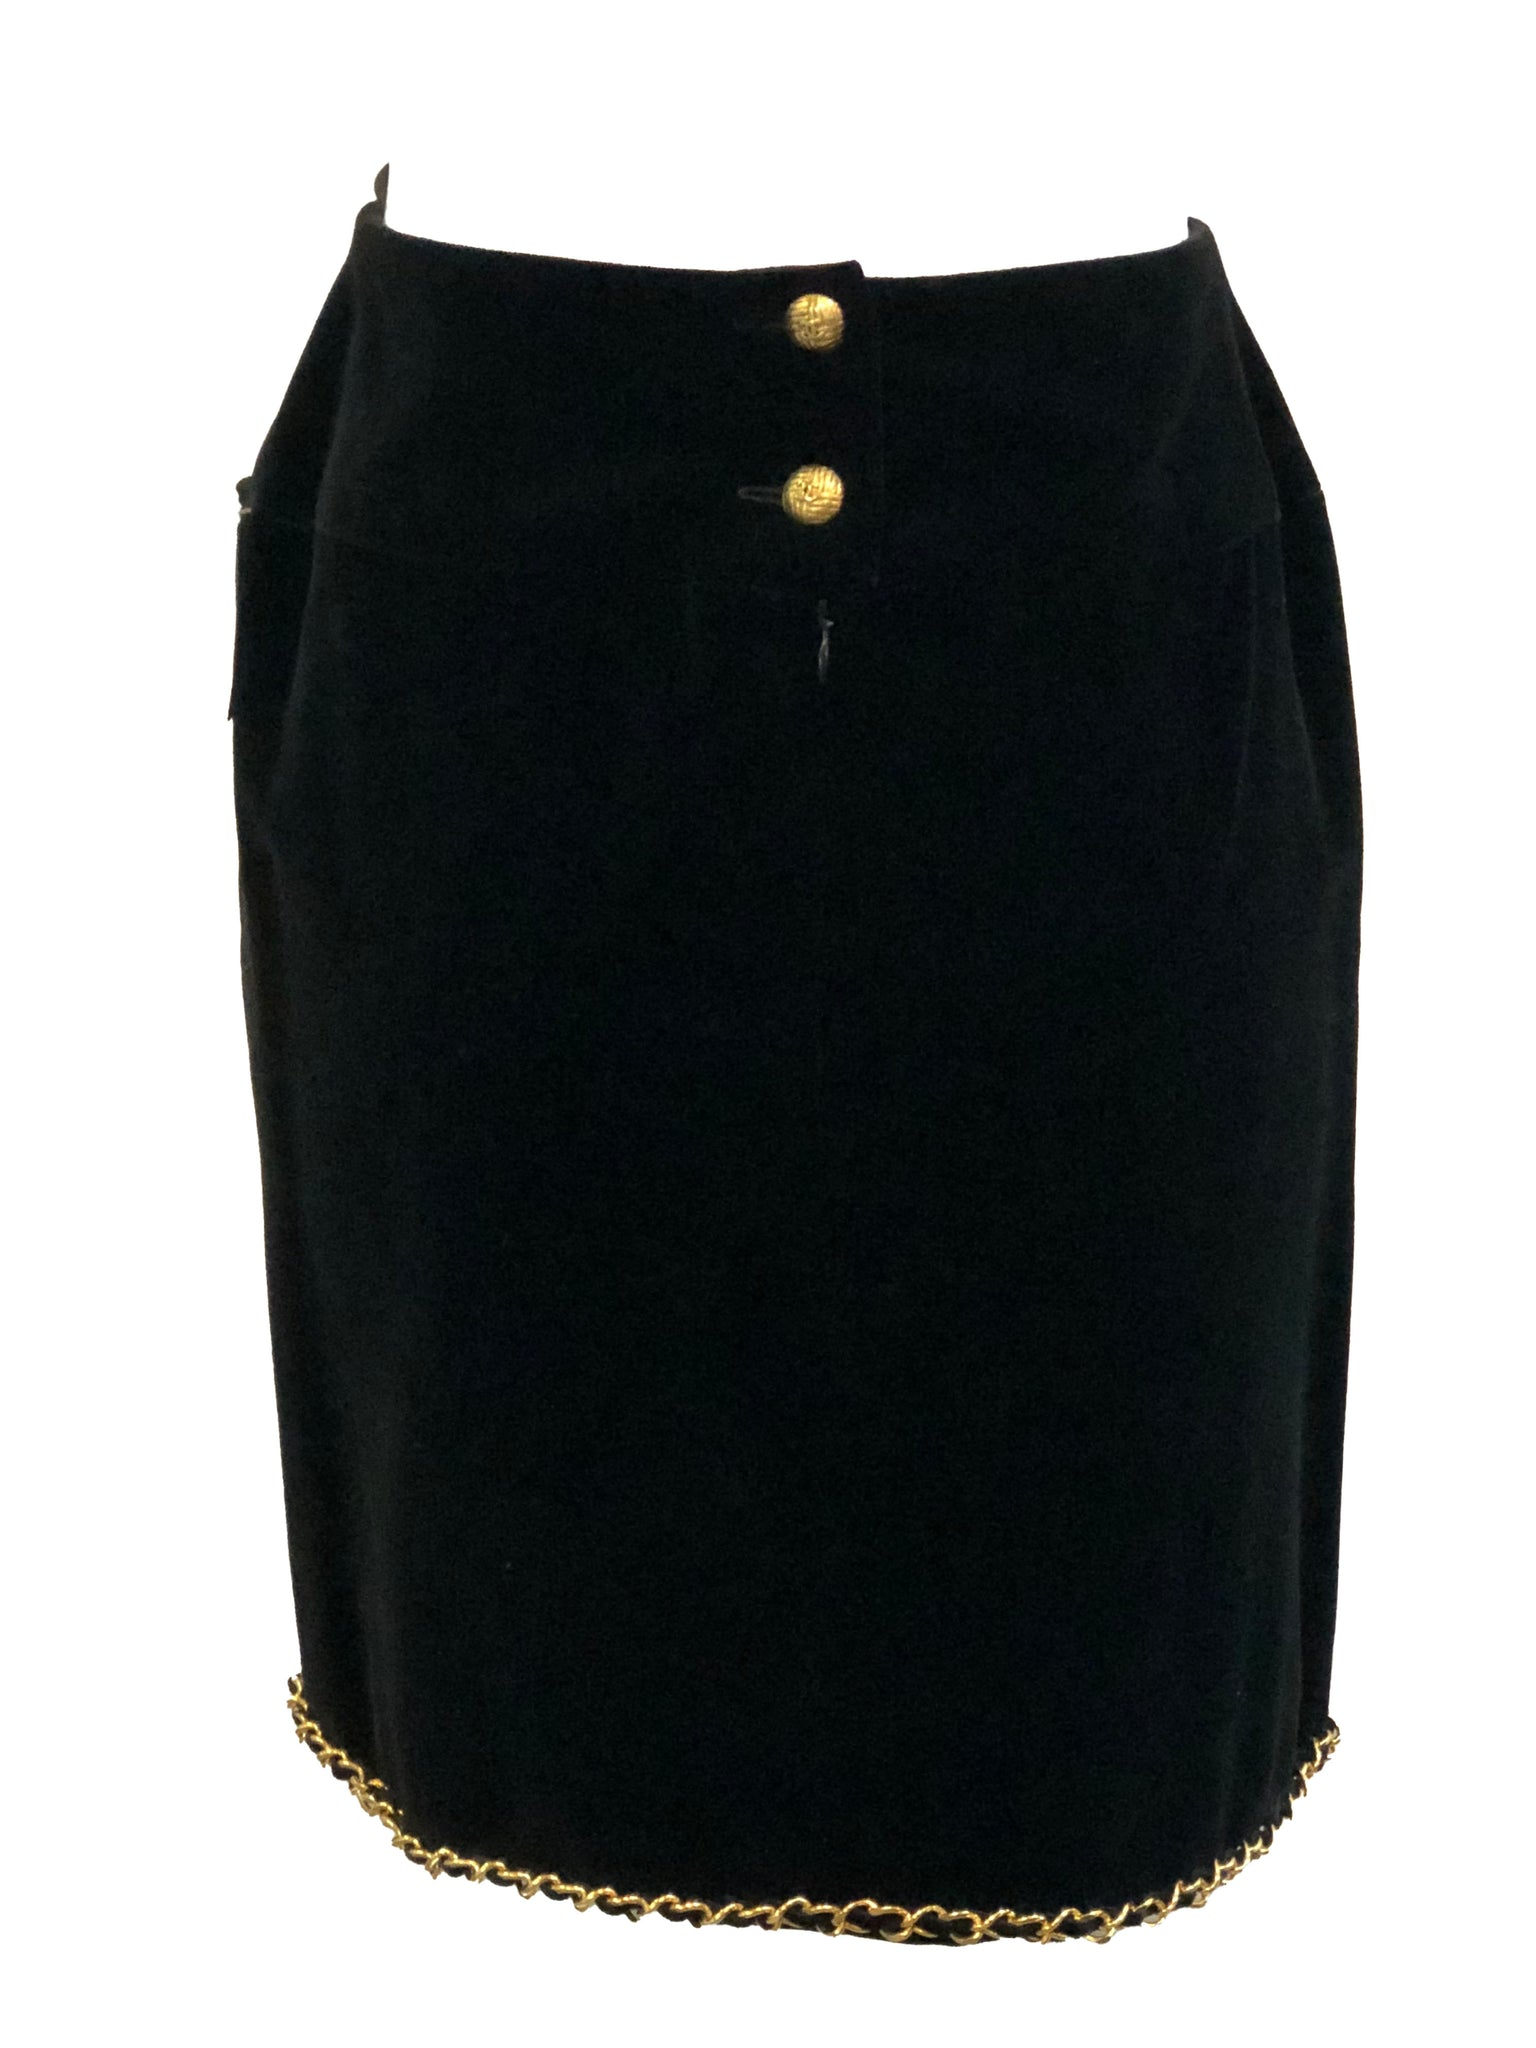 Chanel Black Velvet Mini Skirt with Gold Chain BACK 3 of 4